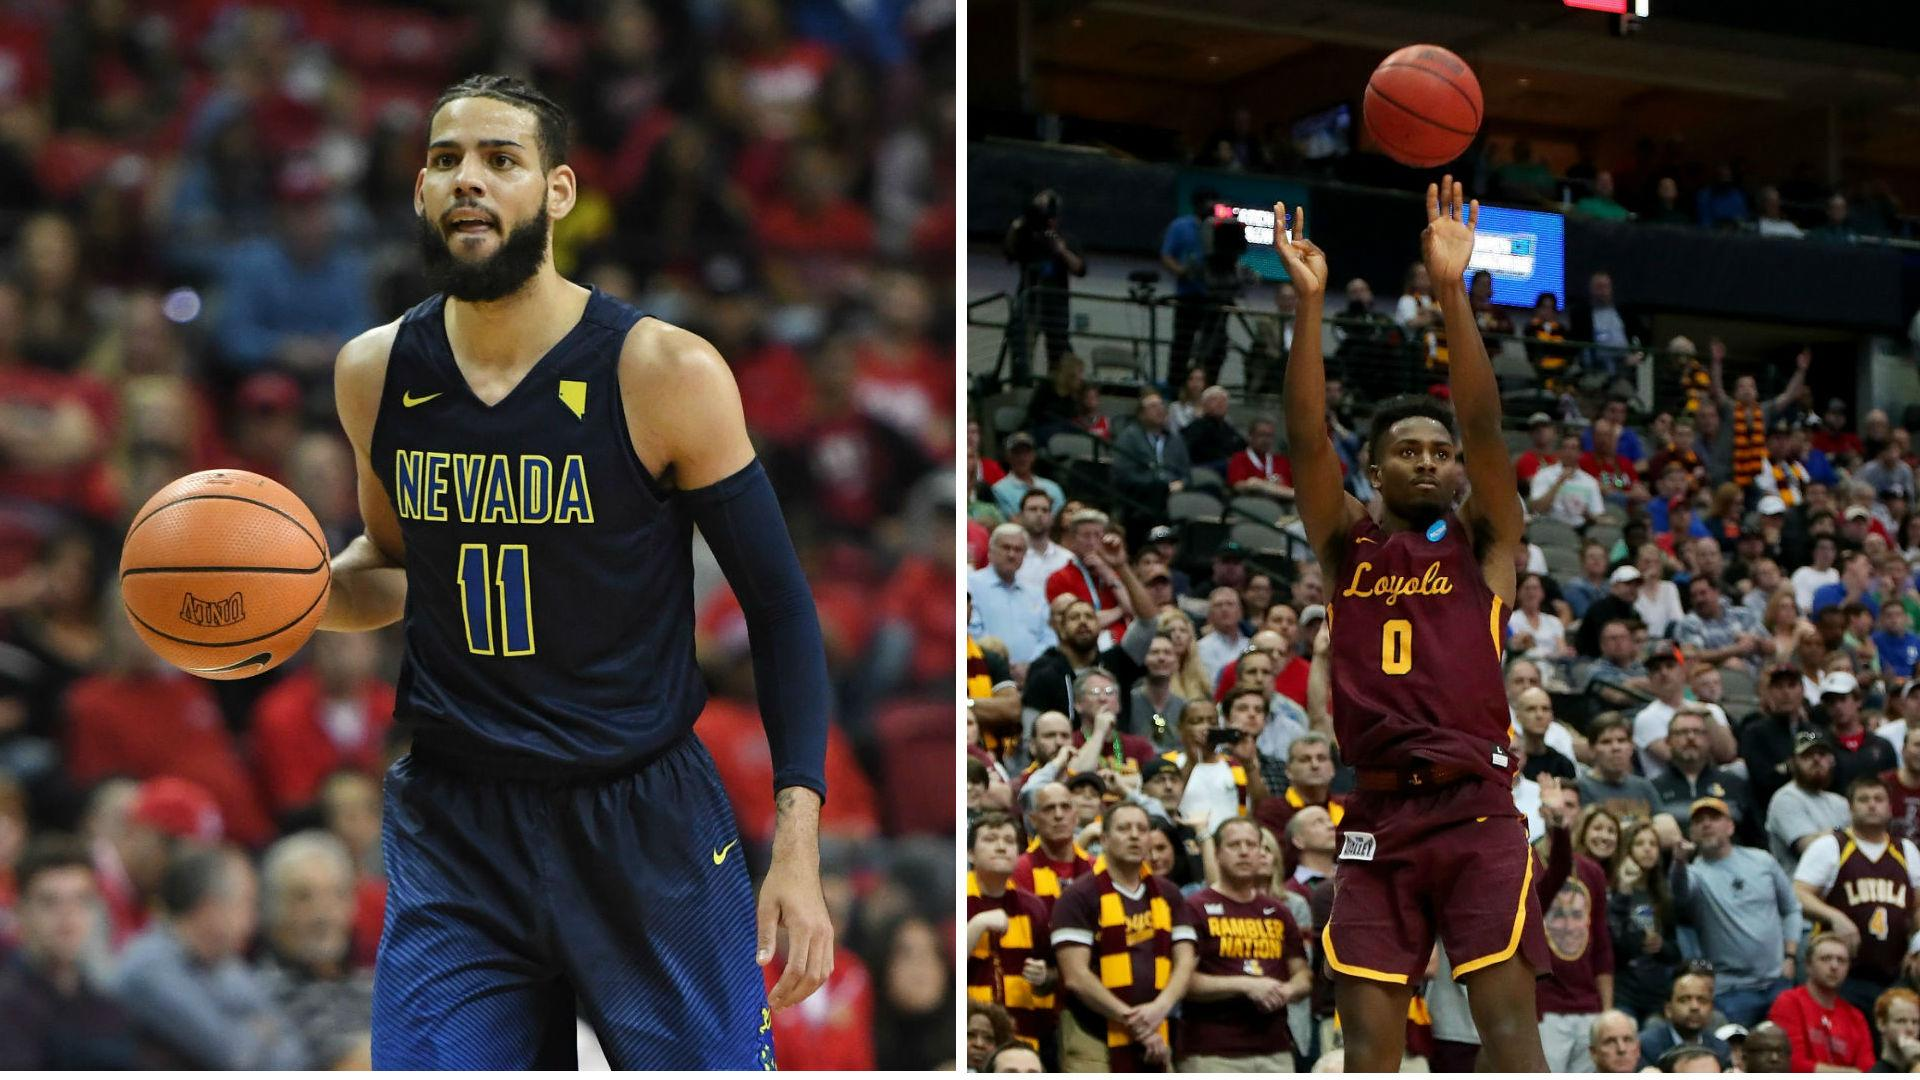 March Madness Picks Against The Spread 2018 Sweet 16: March Madness 2018: Nevada Vs. Loyola-Chicago Matchup